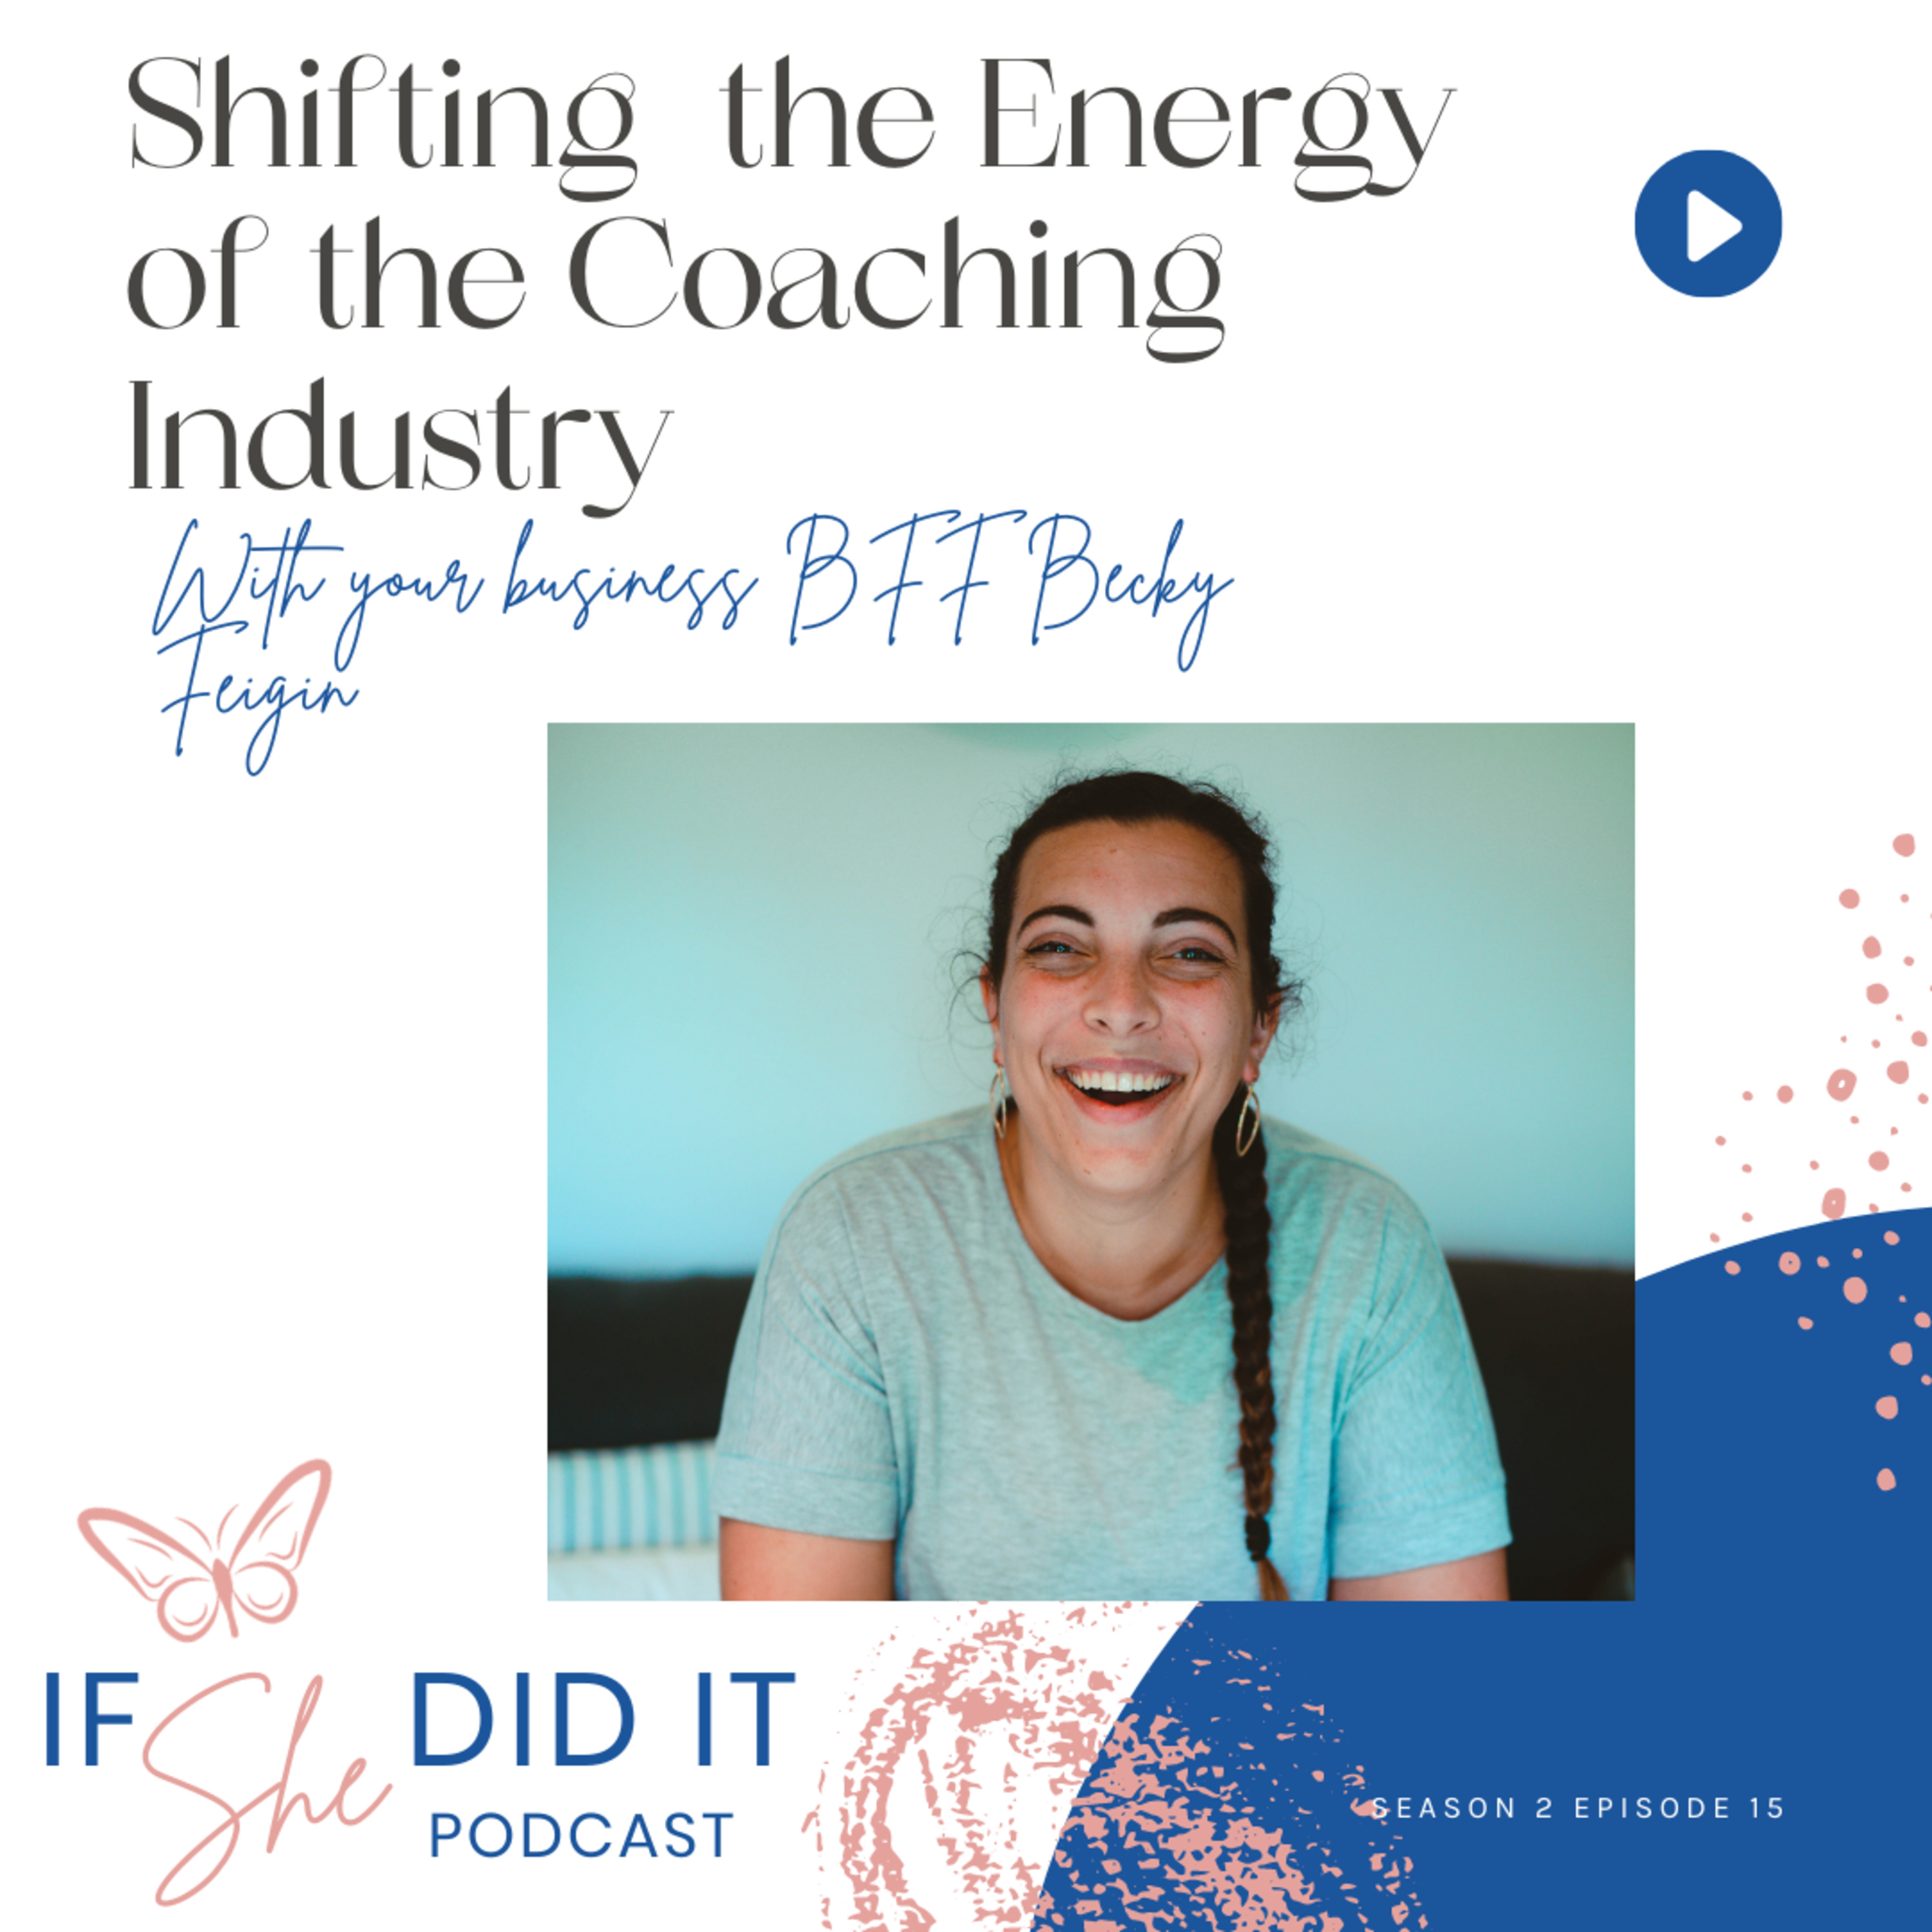 Shifting the Energy of the Coaching Industry